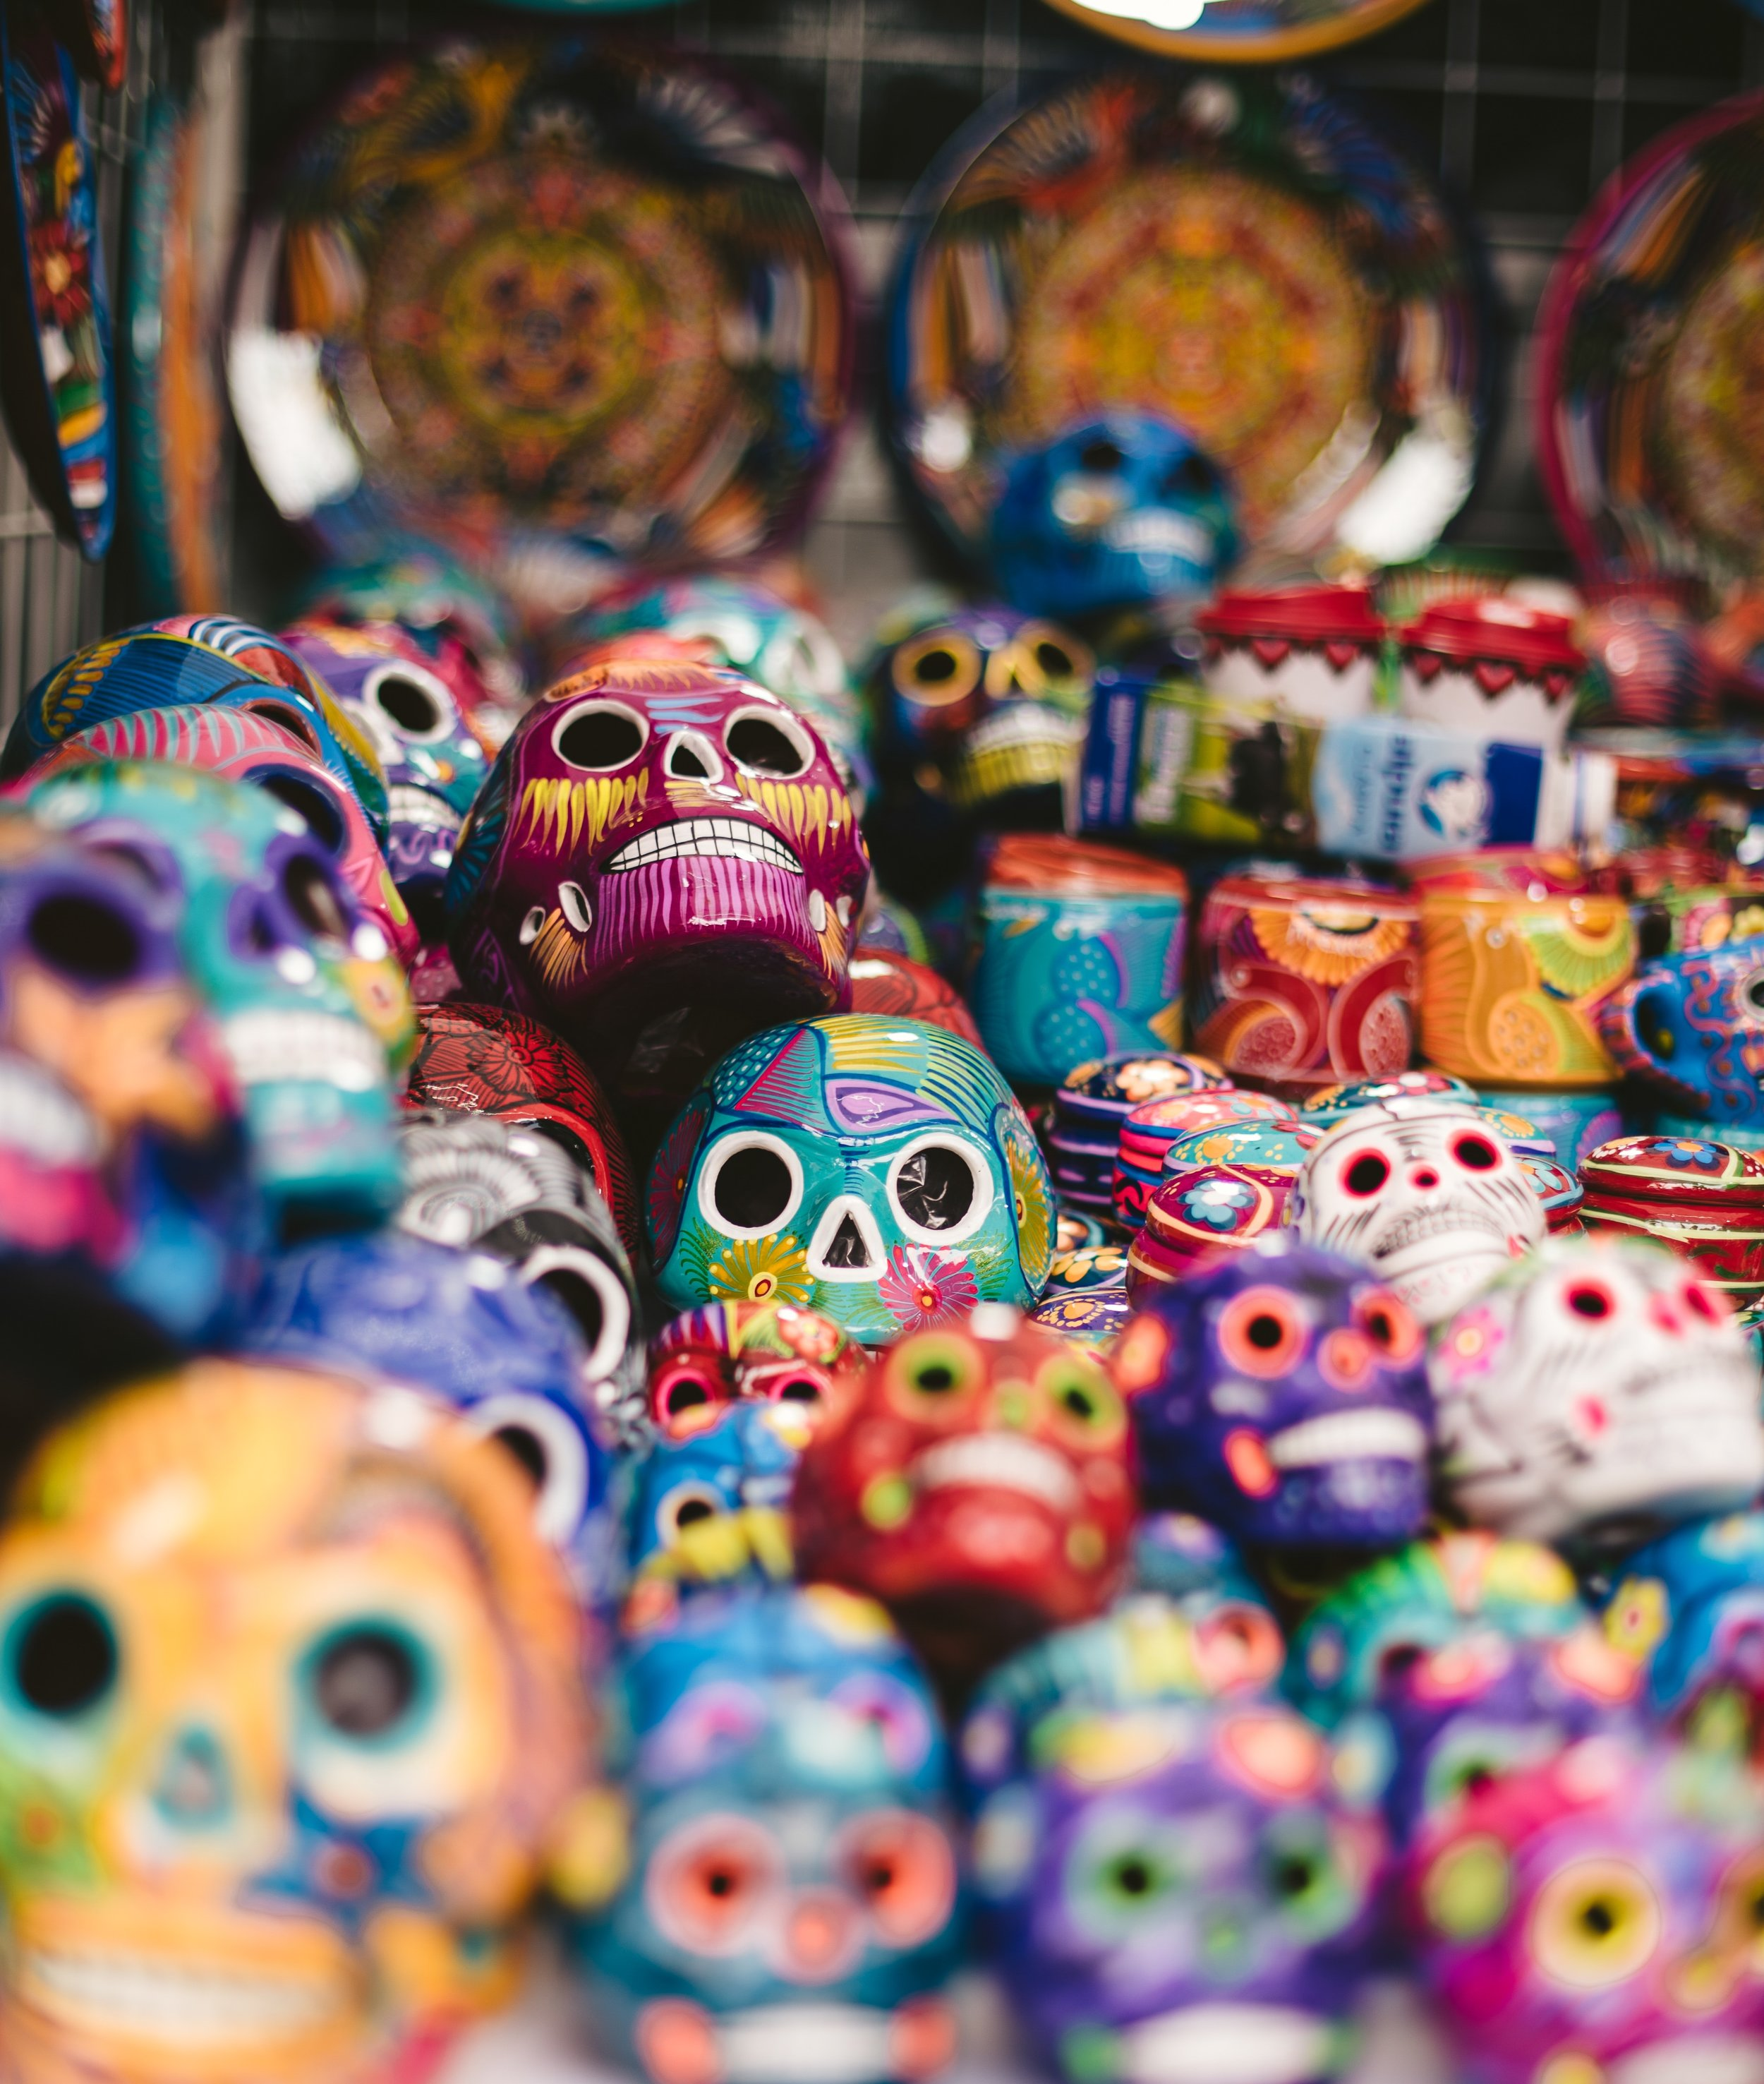 One of the best places to shop in Mexico City is La Ciudadela.